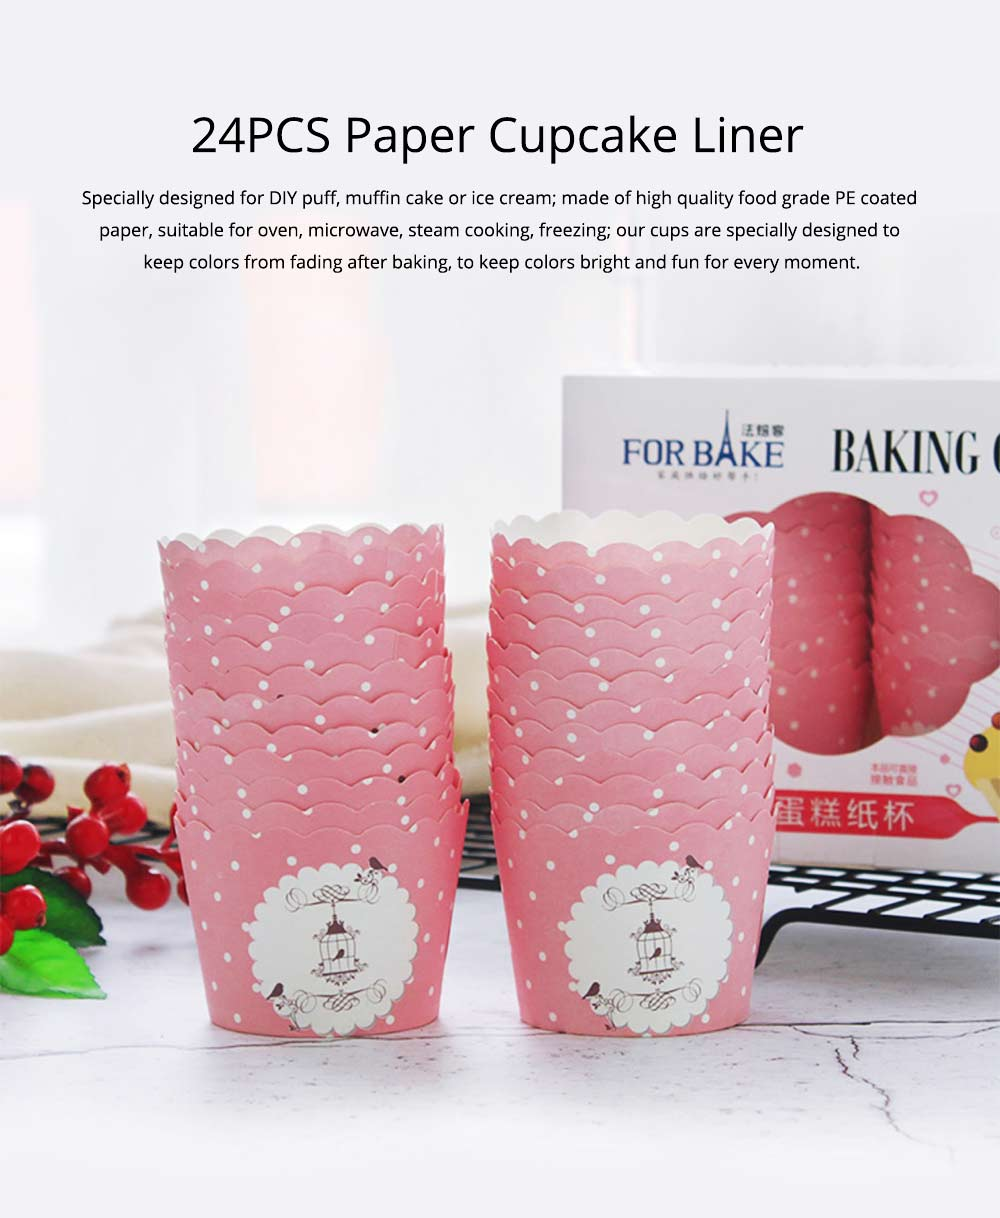 Paper Plate Cupcakes Liner, 24PCS Baking Cups Puff Muffin Cases Box 0